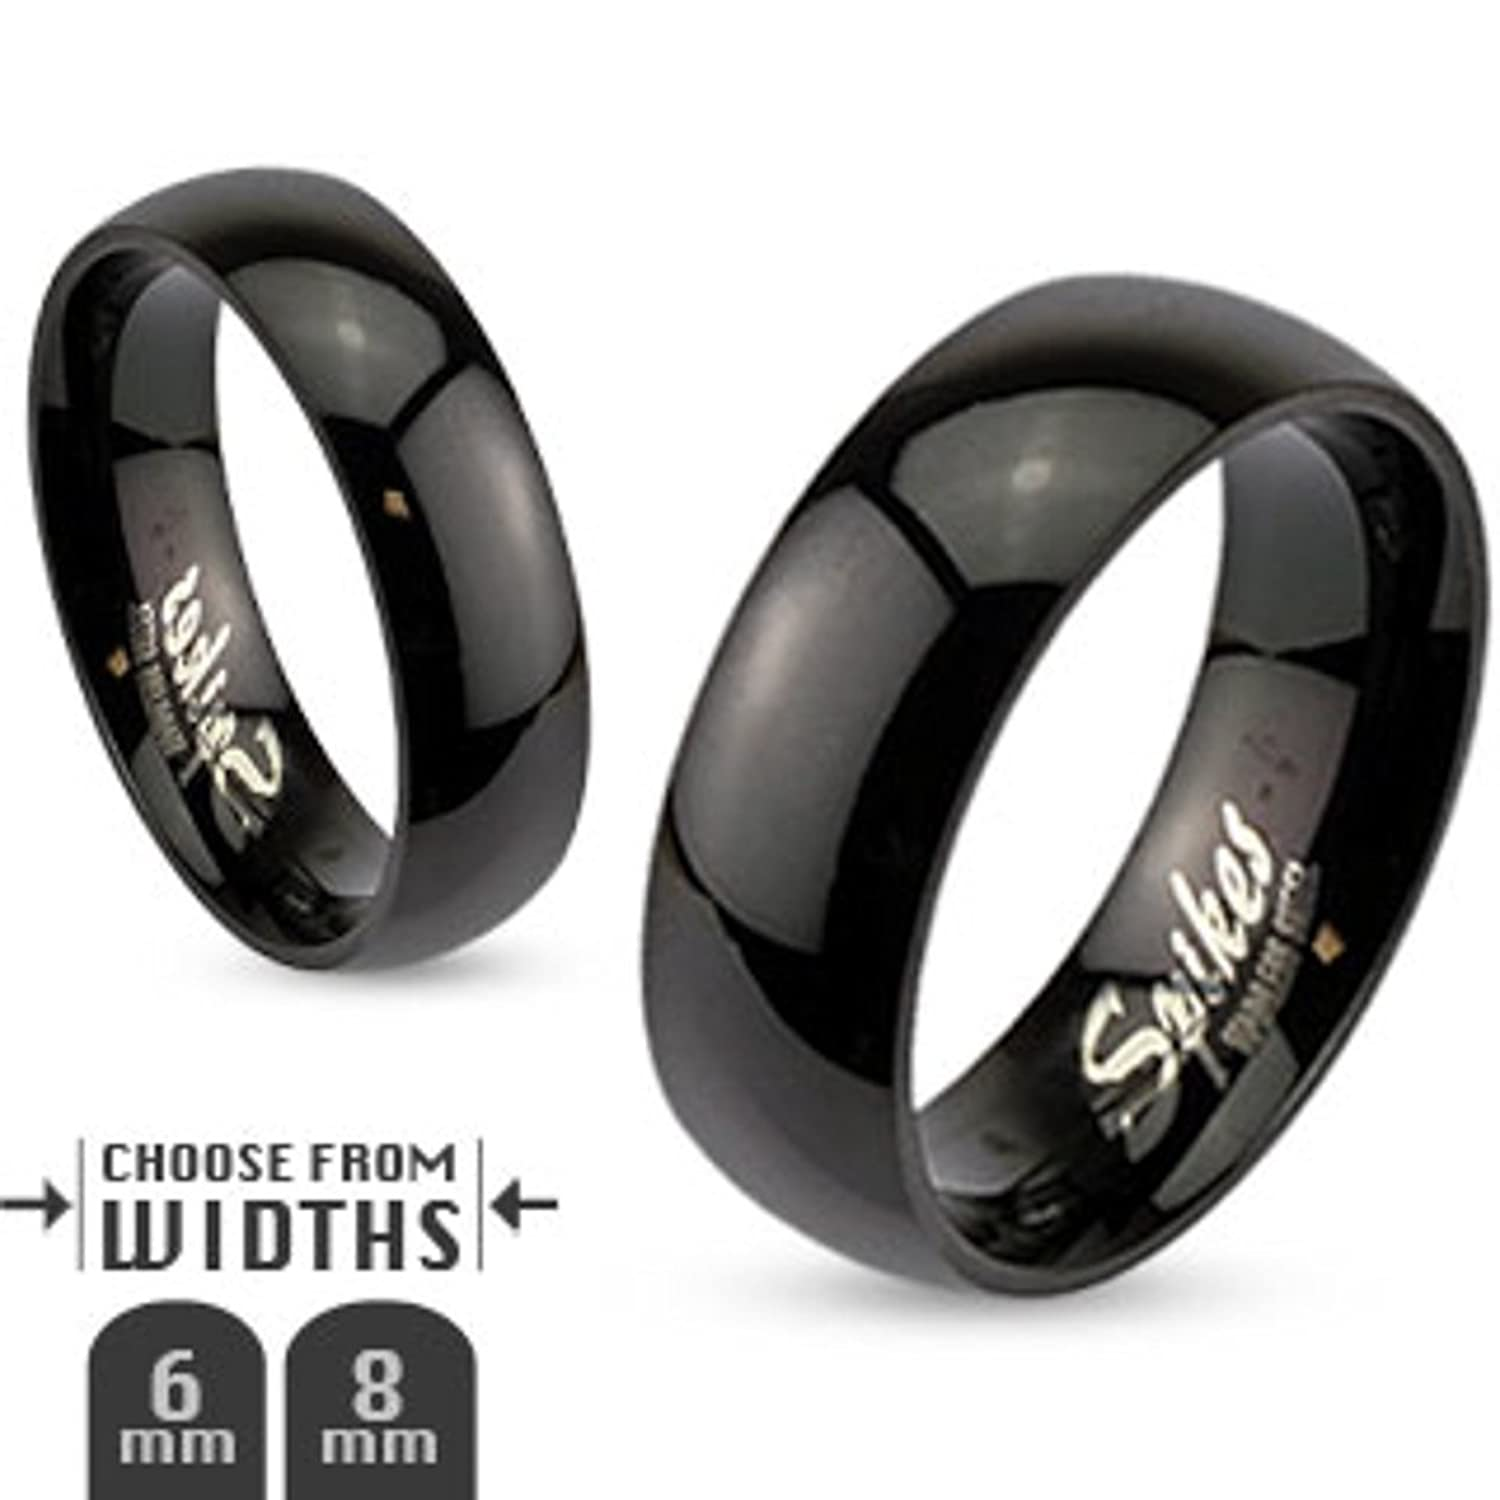 rings black ip men s ap com band zirconium wedding realtree camo walmart